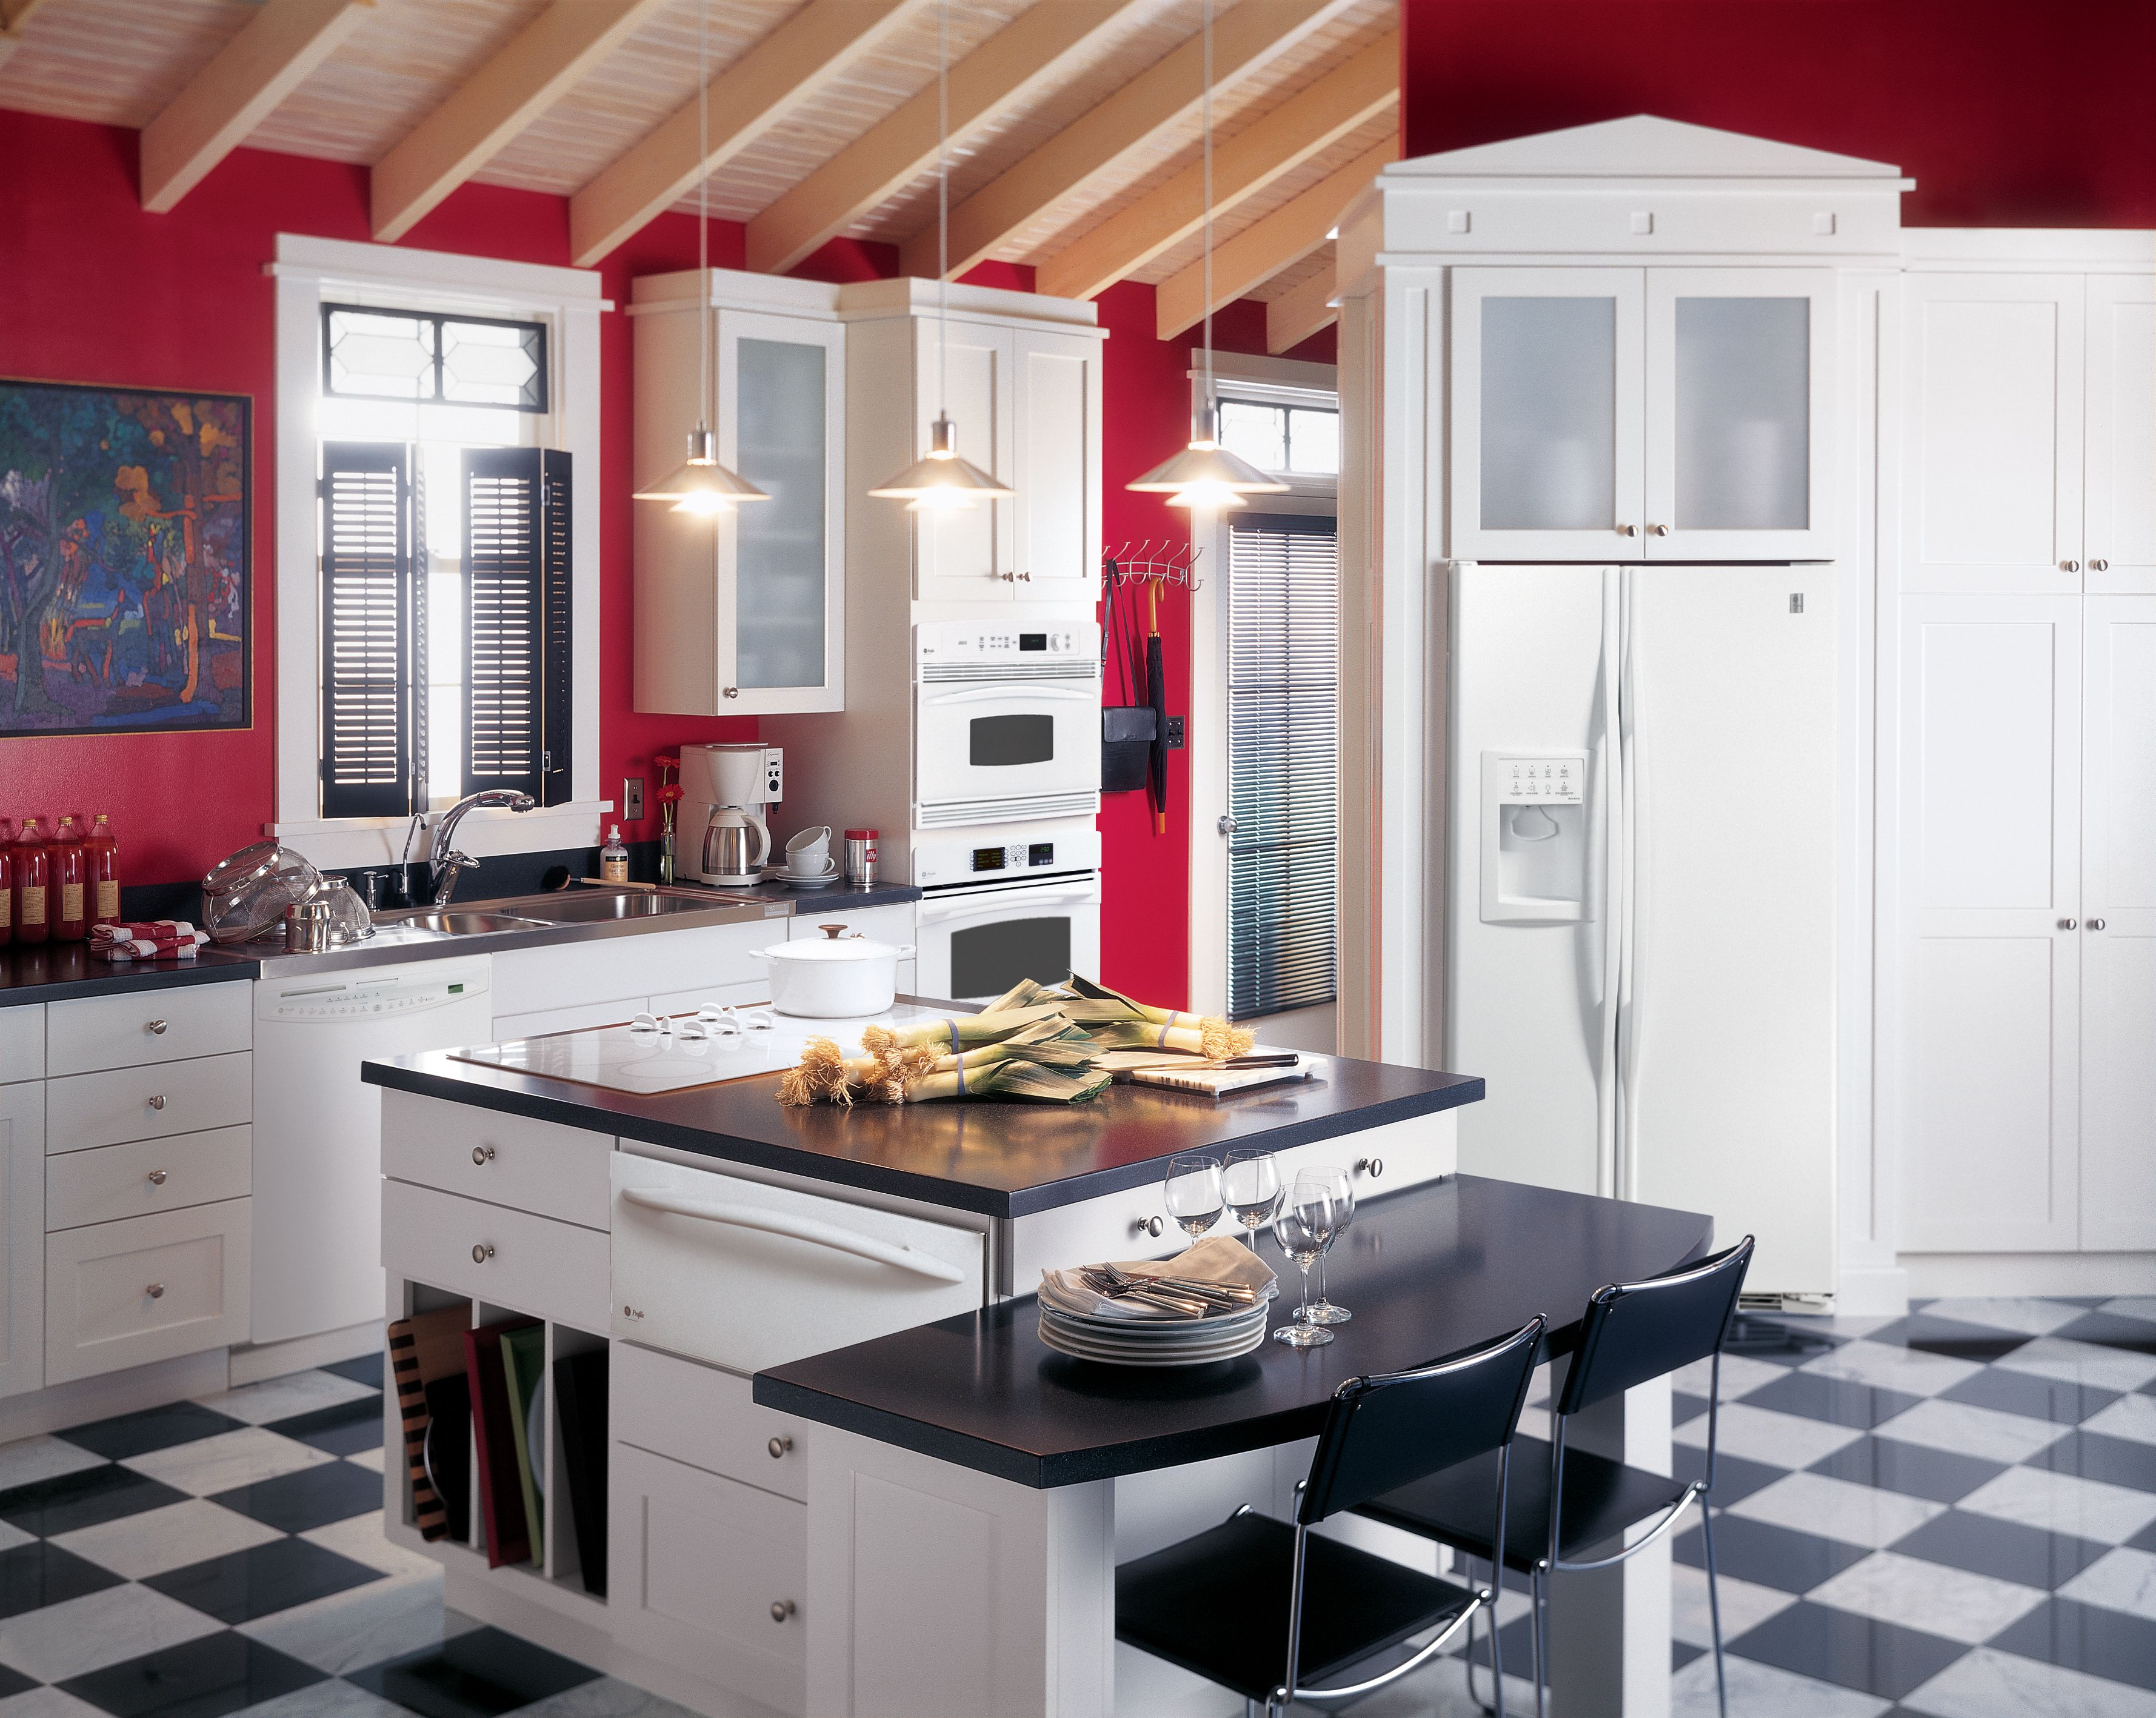 Decorating Kitchen Walls Cheap Rugs Ge Profile With Red White Cabinets And